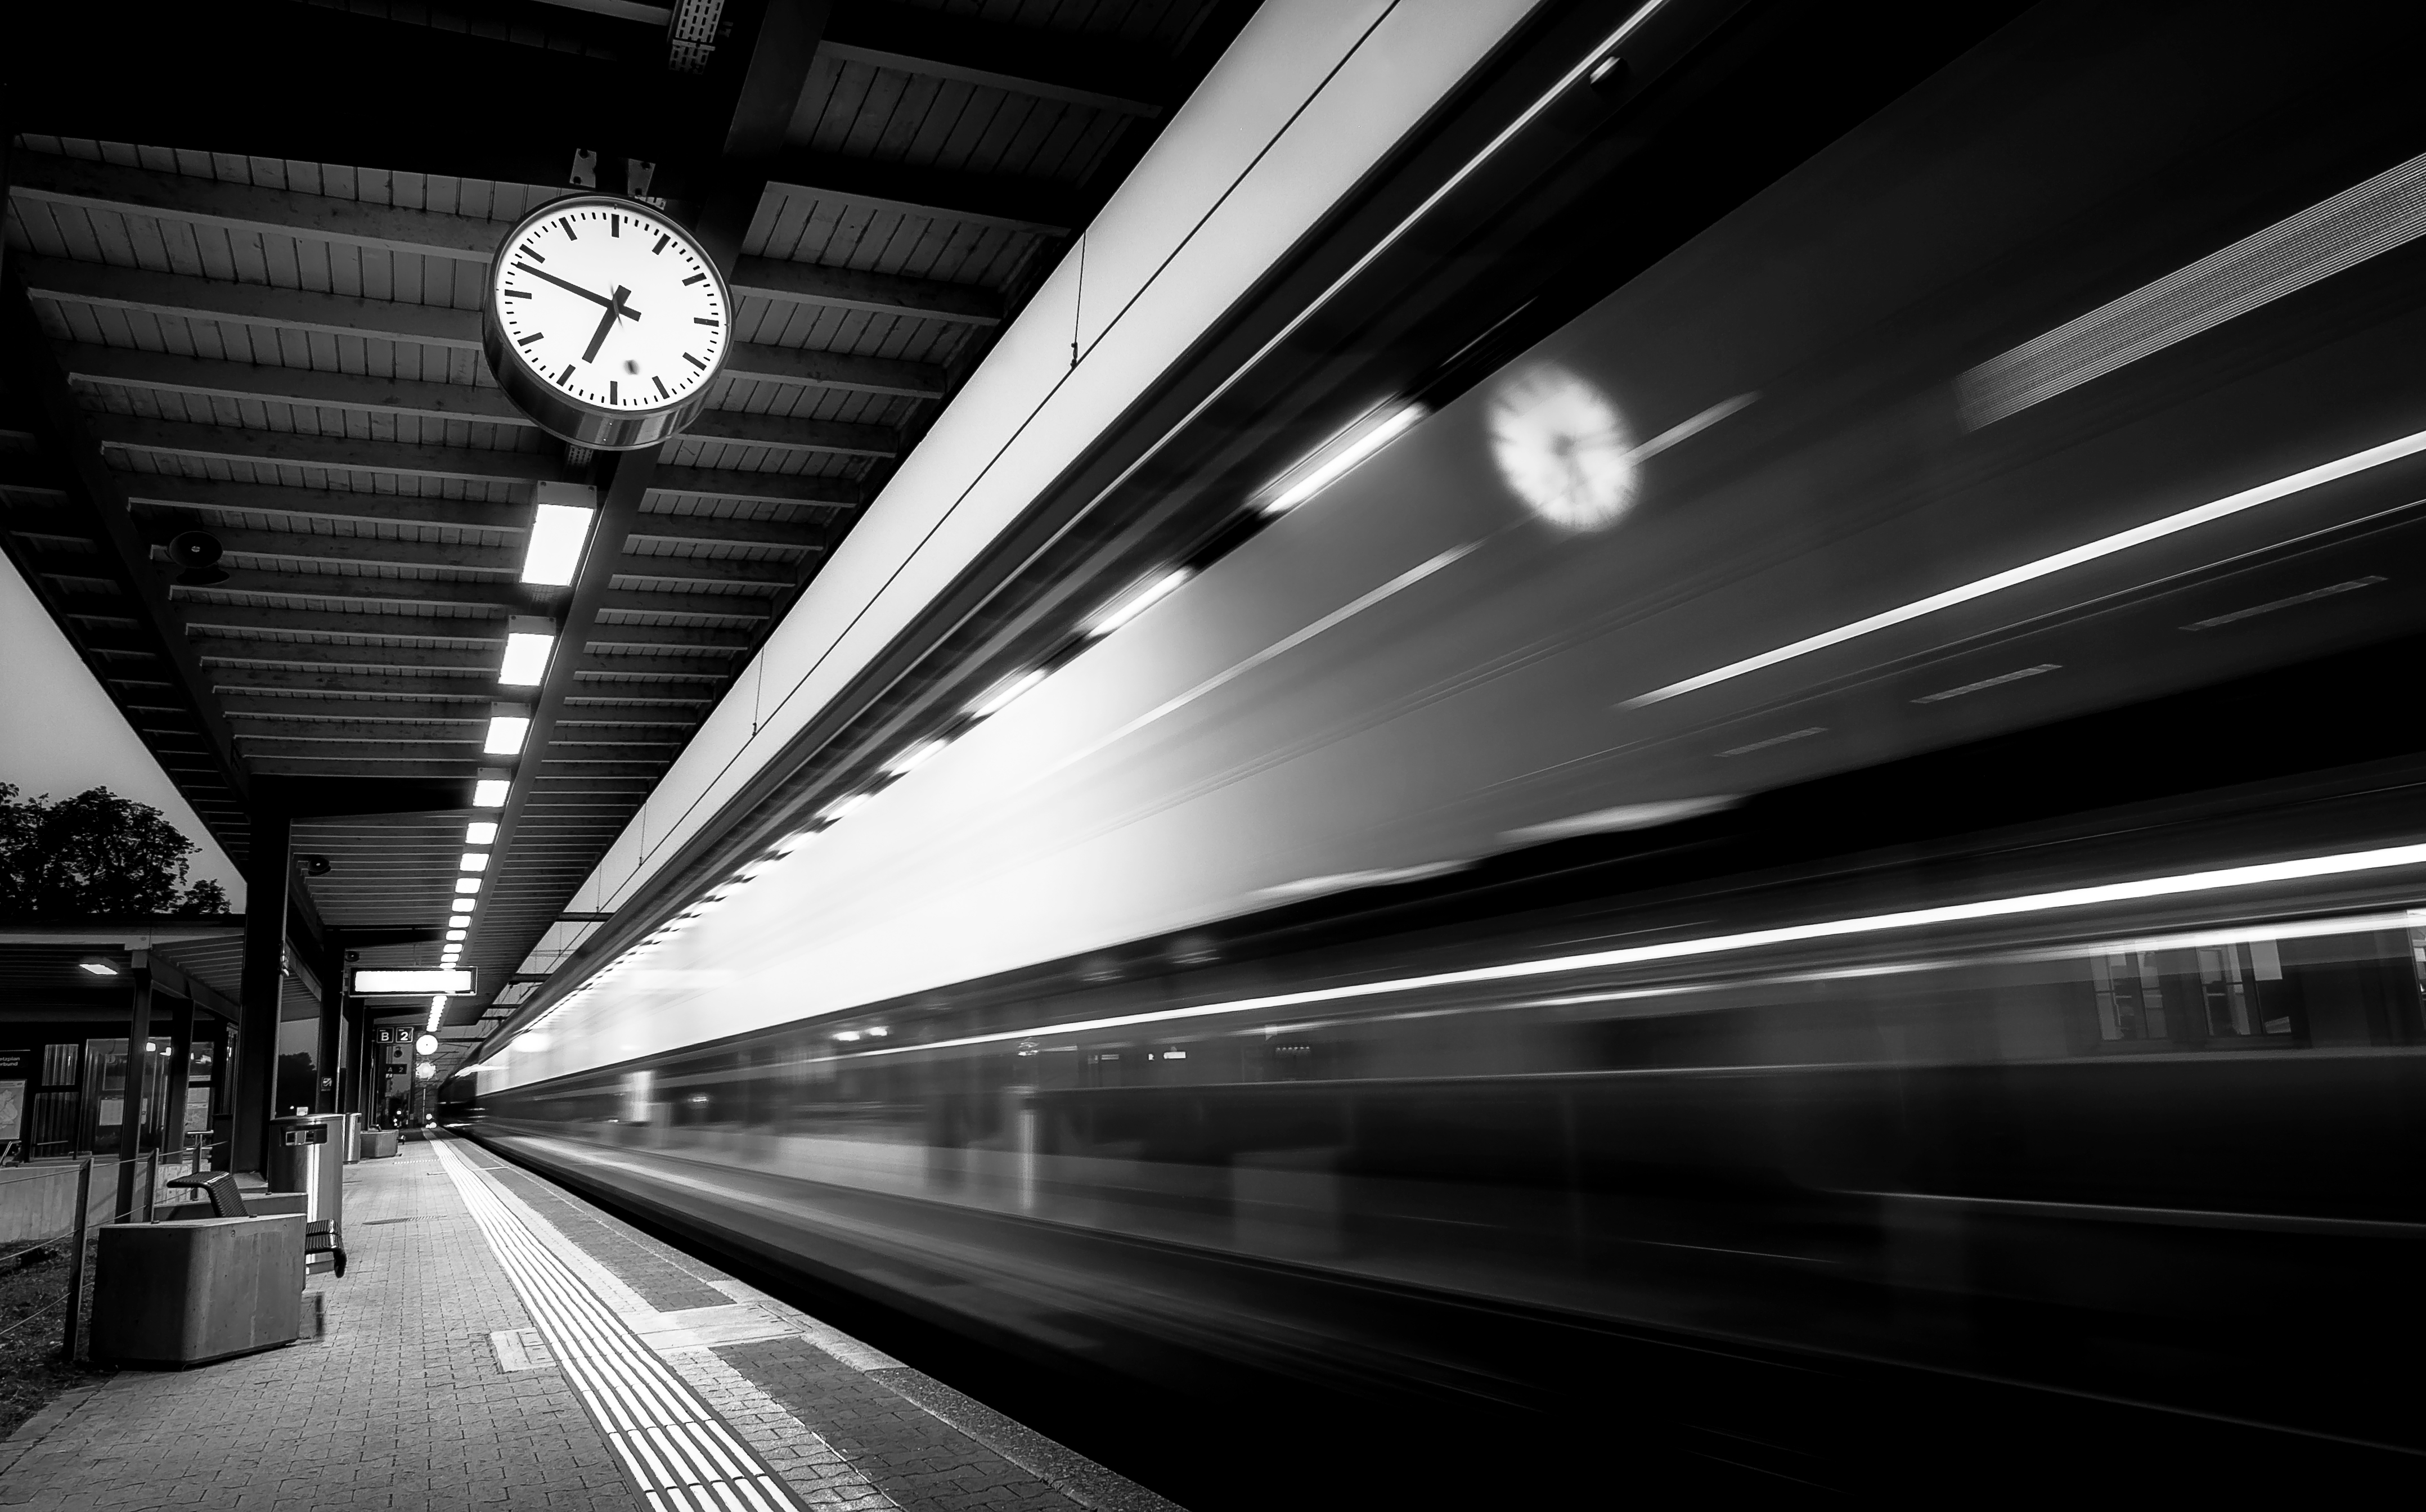 Train departing from the station in black and white